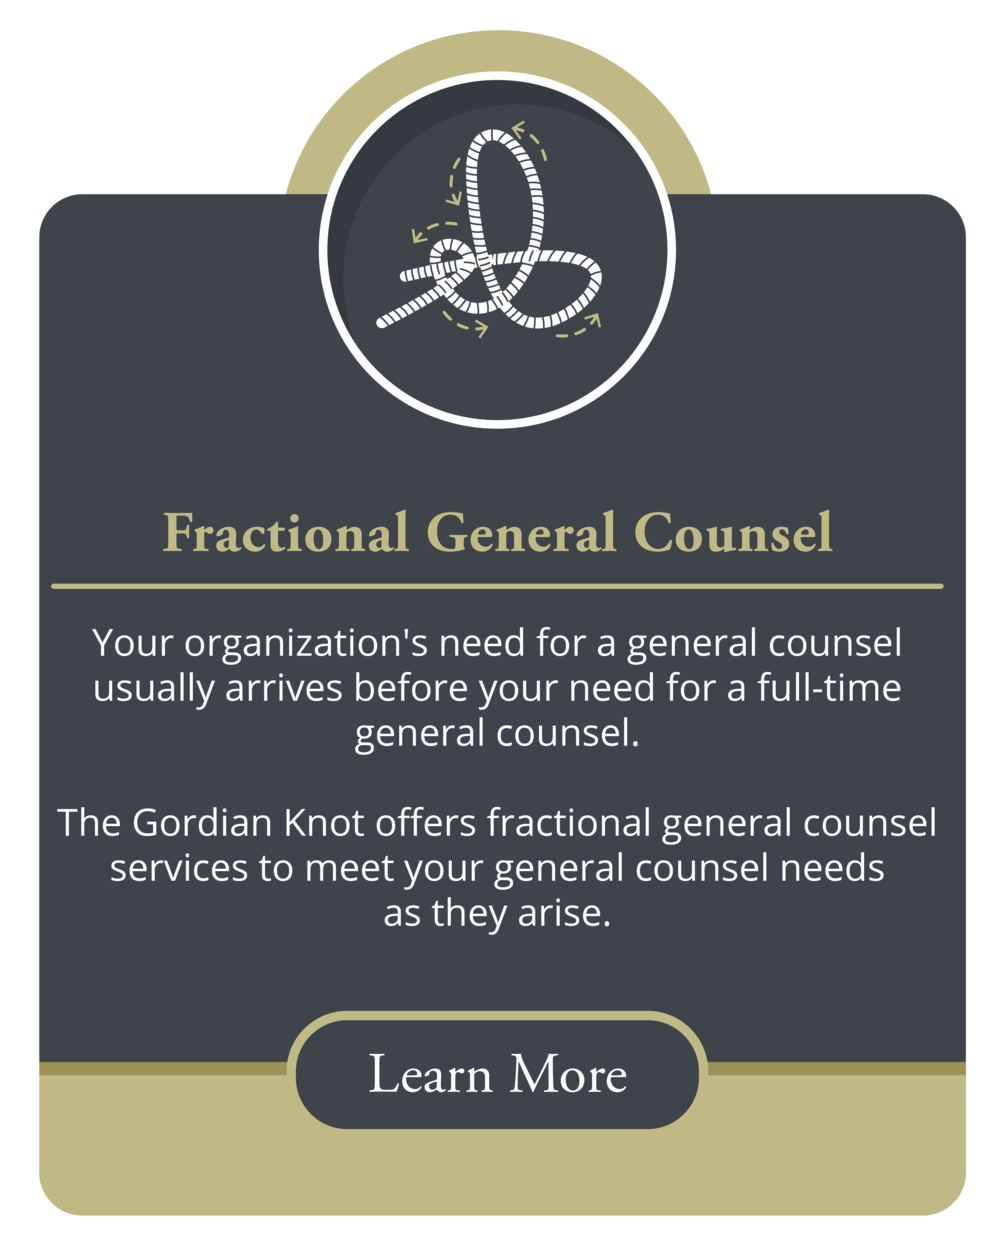 GordianKnot-service-fractional-general.png